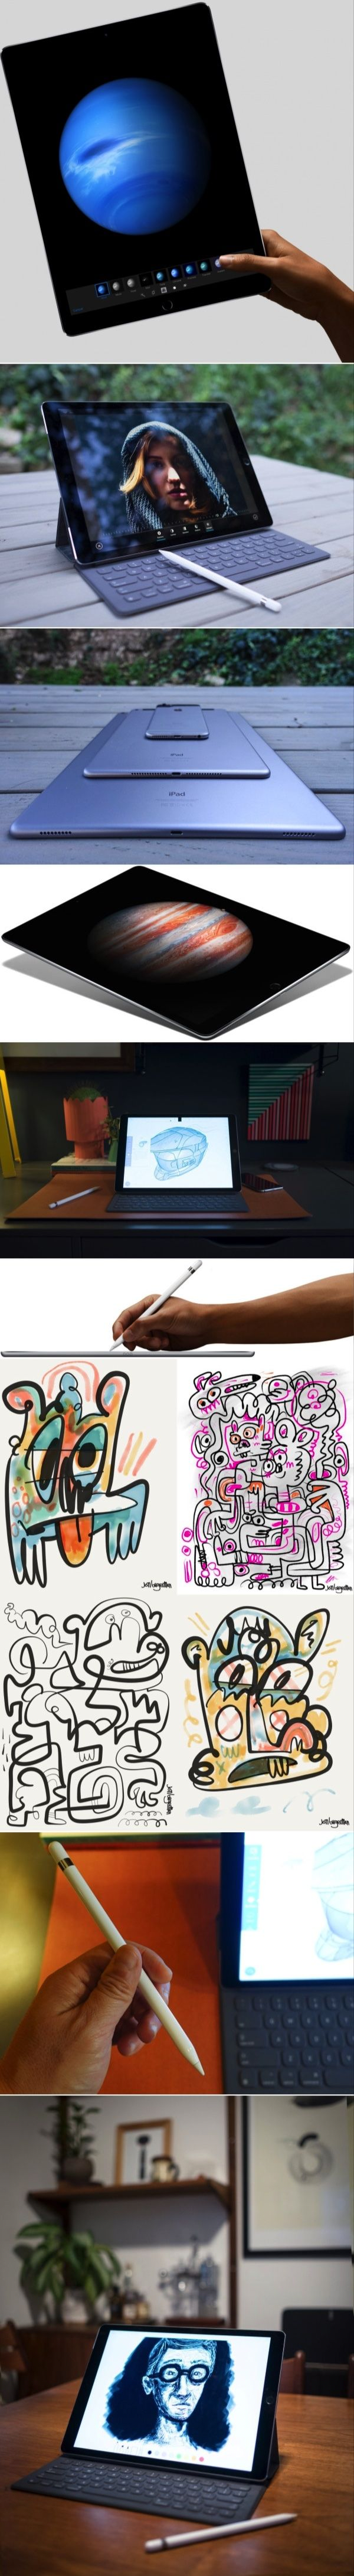 Hands On With the iPad Pro and In the Hands of the Creative